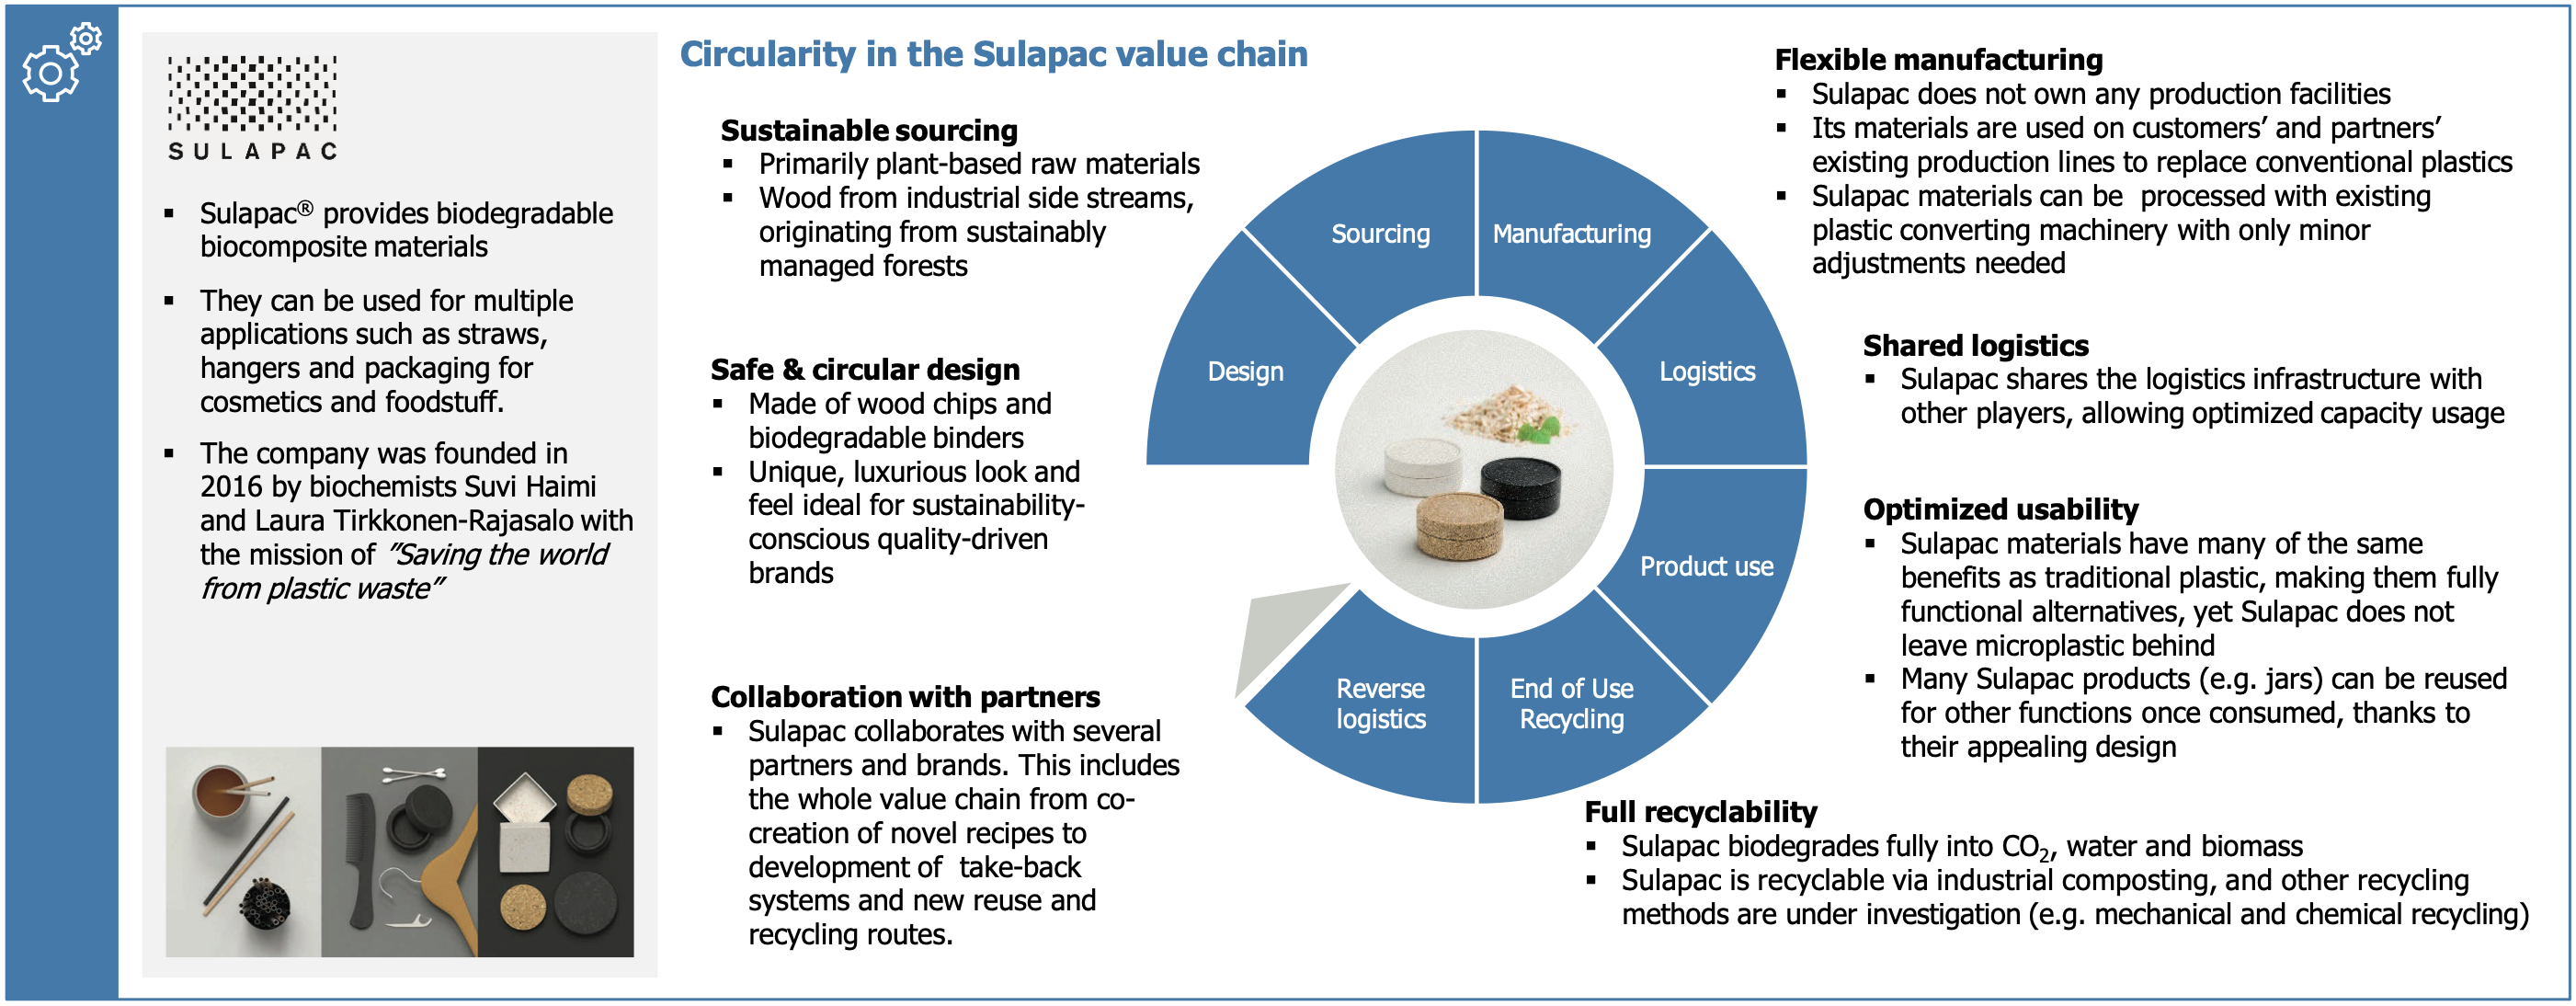 Circularity in Sulapac's operations